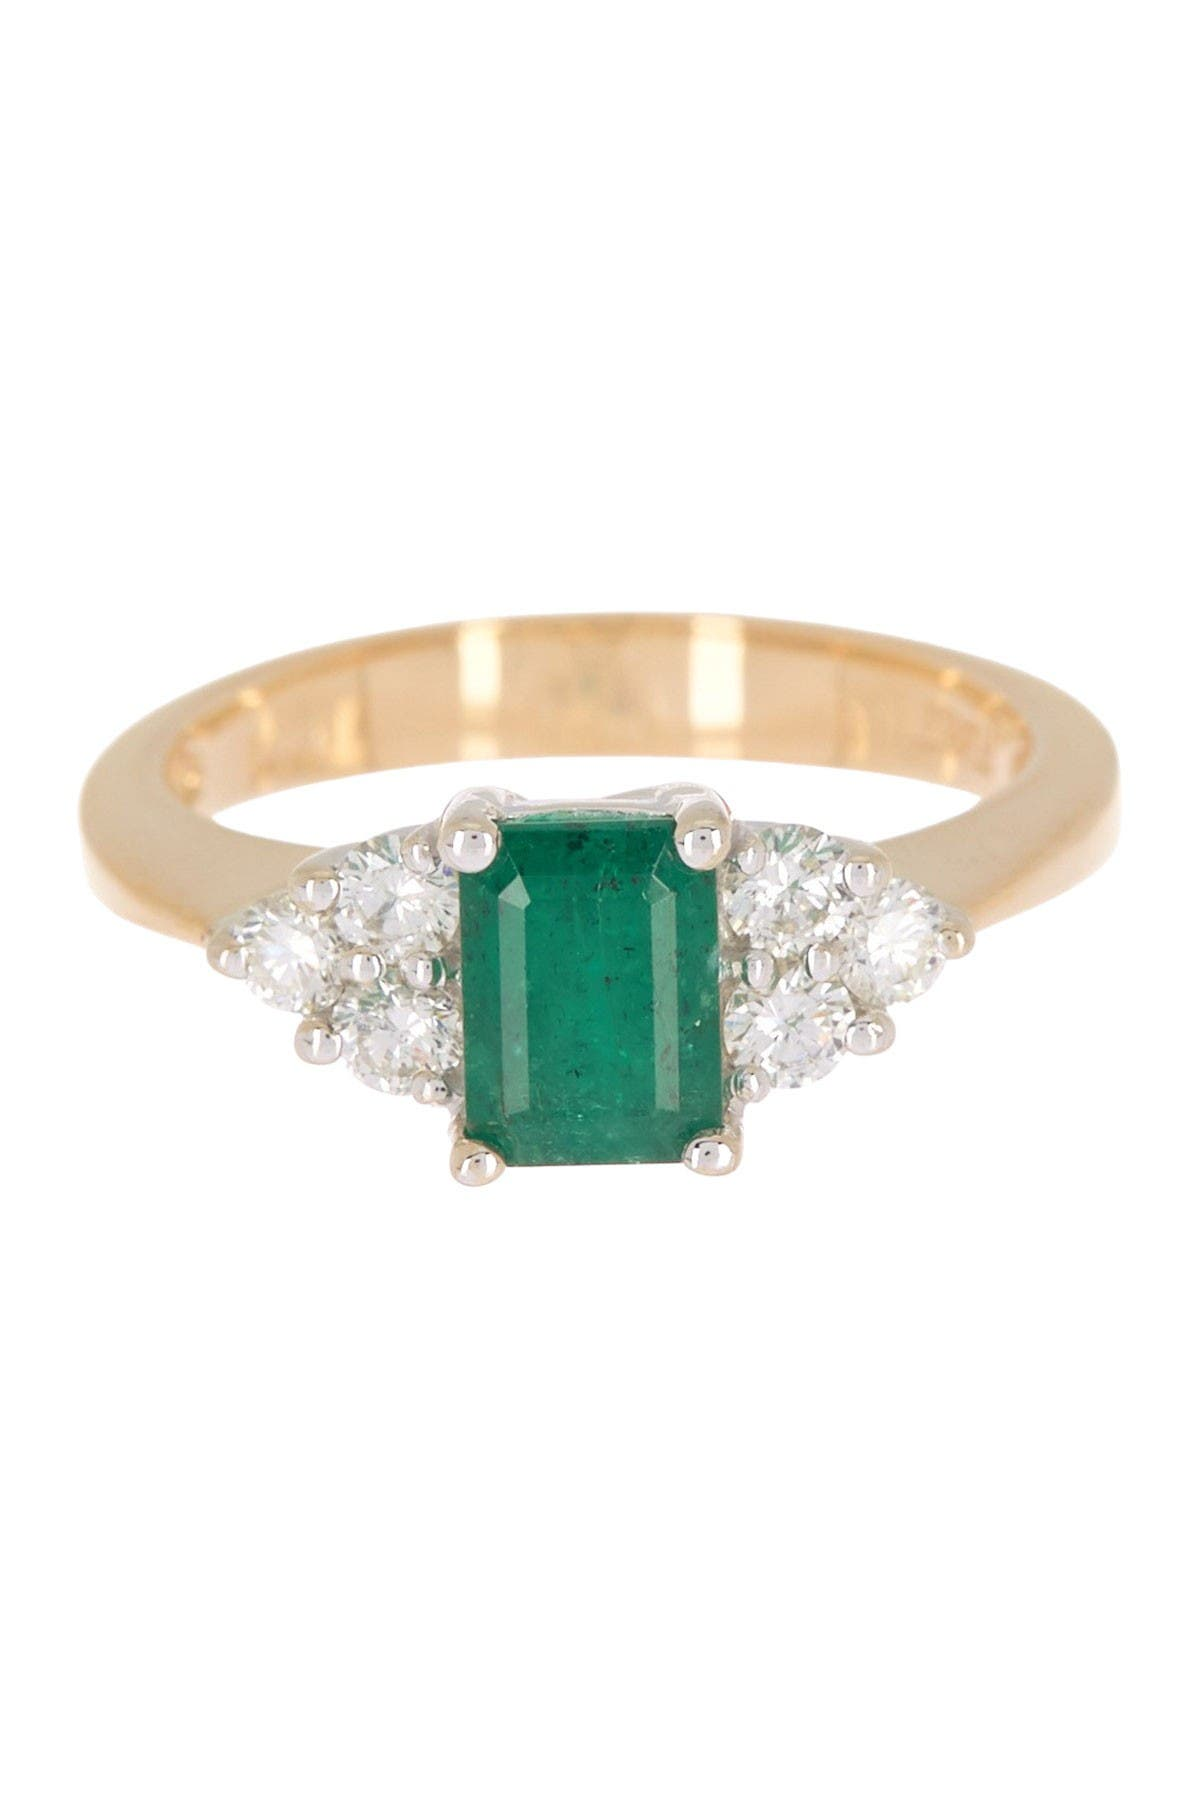 Image of Effy 14K Yellow Gold Prong Set Emerald & Diamond Accent Ring - Size 7